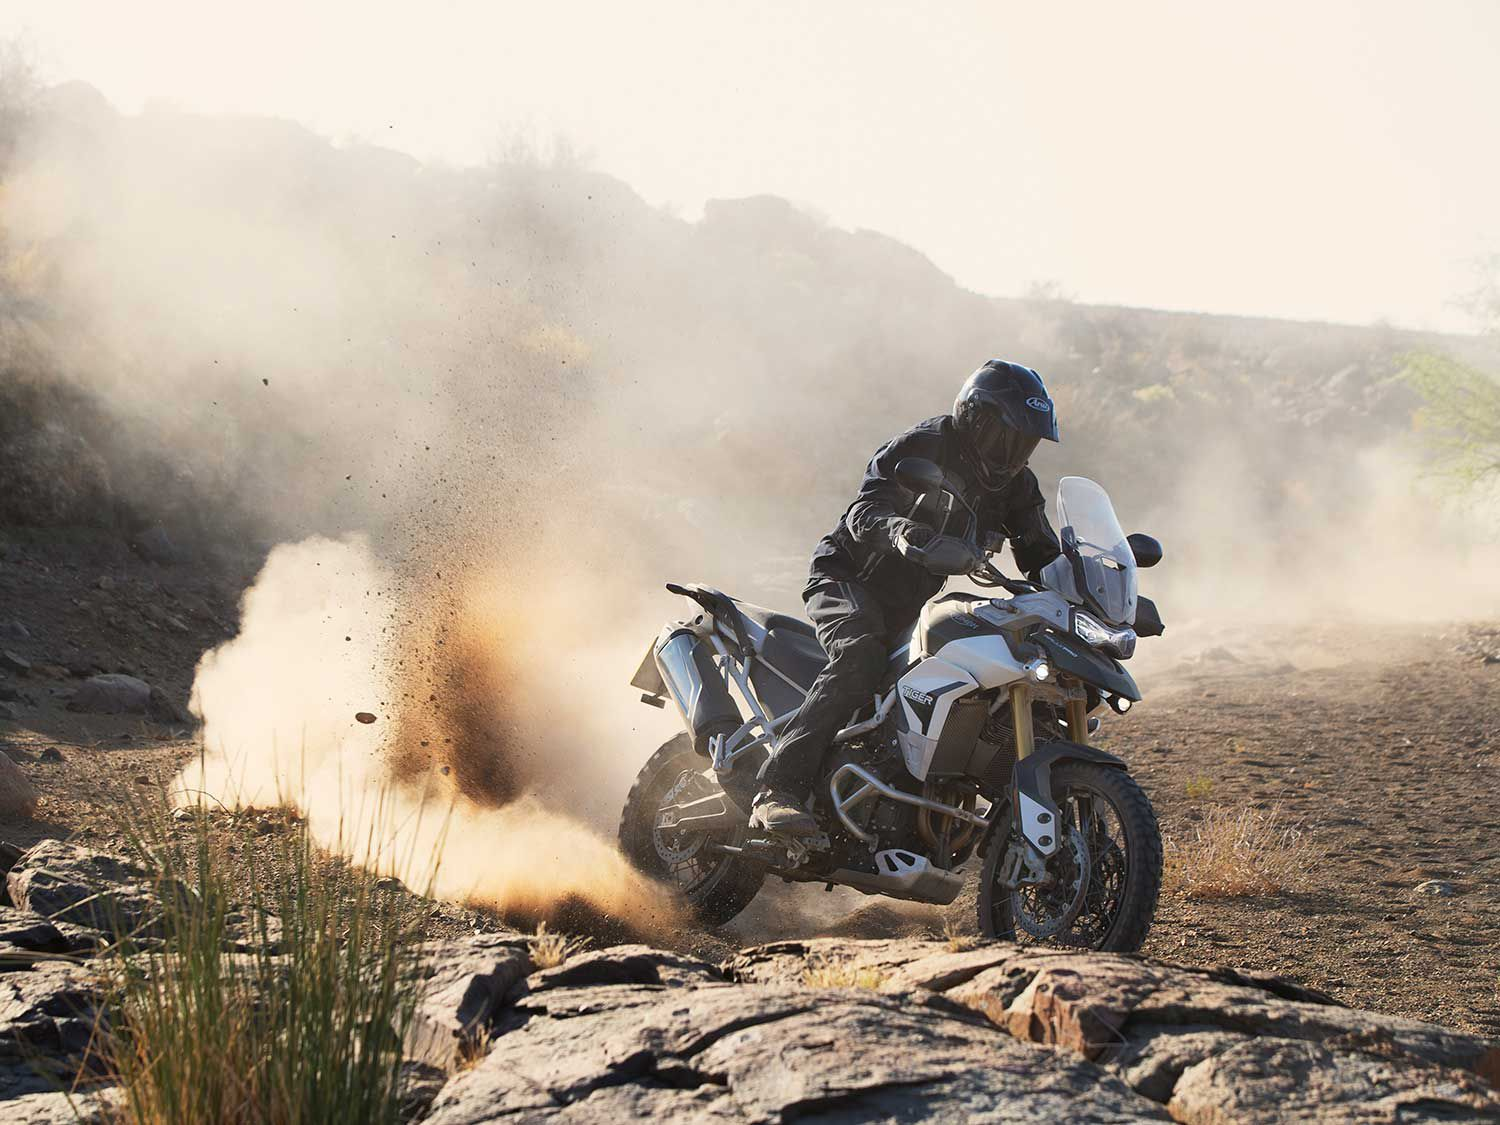 By the looks of it, Triumph's Tiger 900 looks more off-road oriented than the 800 model it replaces.